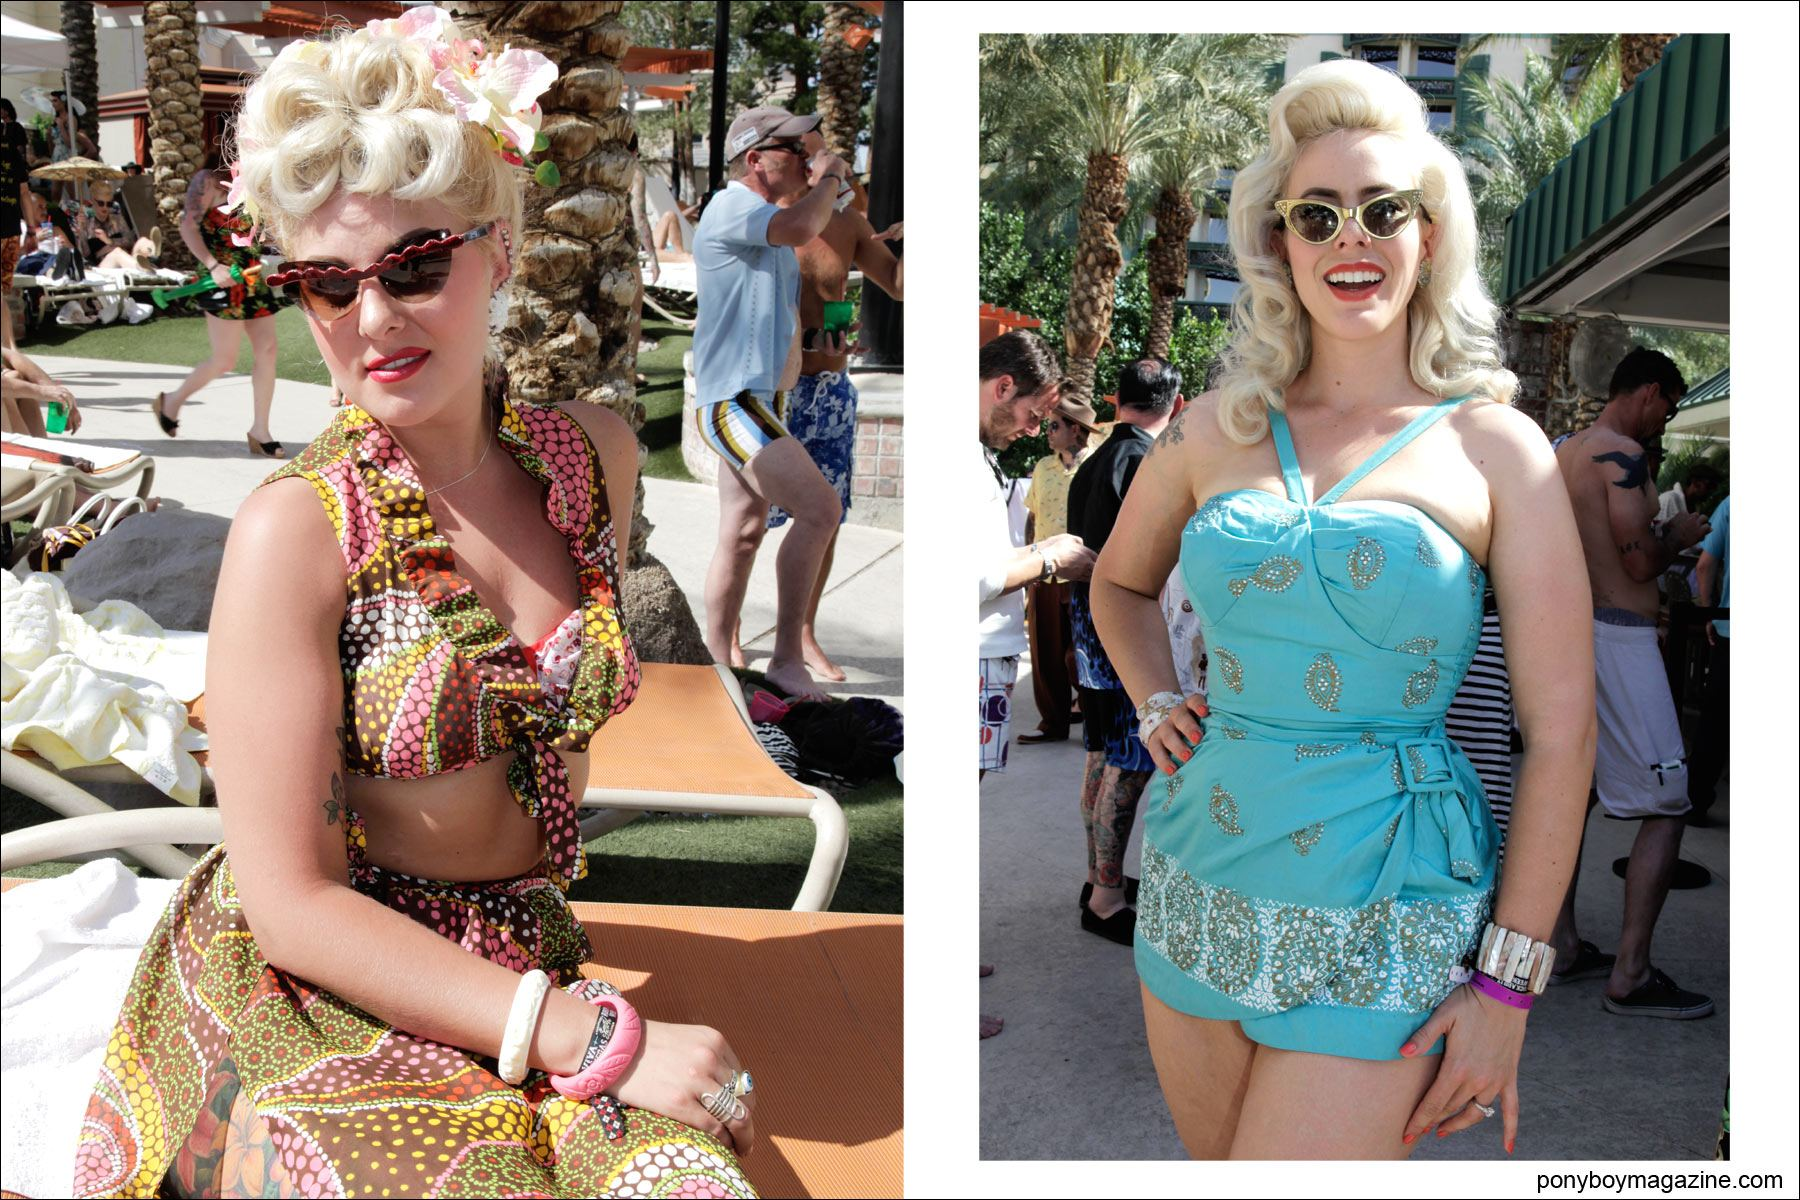 Beautiful blonds by the pool in vintage 1950's swimsuits, photographed by Alexander Thompson for Ponyboy Magazine at Viva Las Vegas rockabilly weekender.